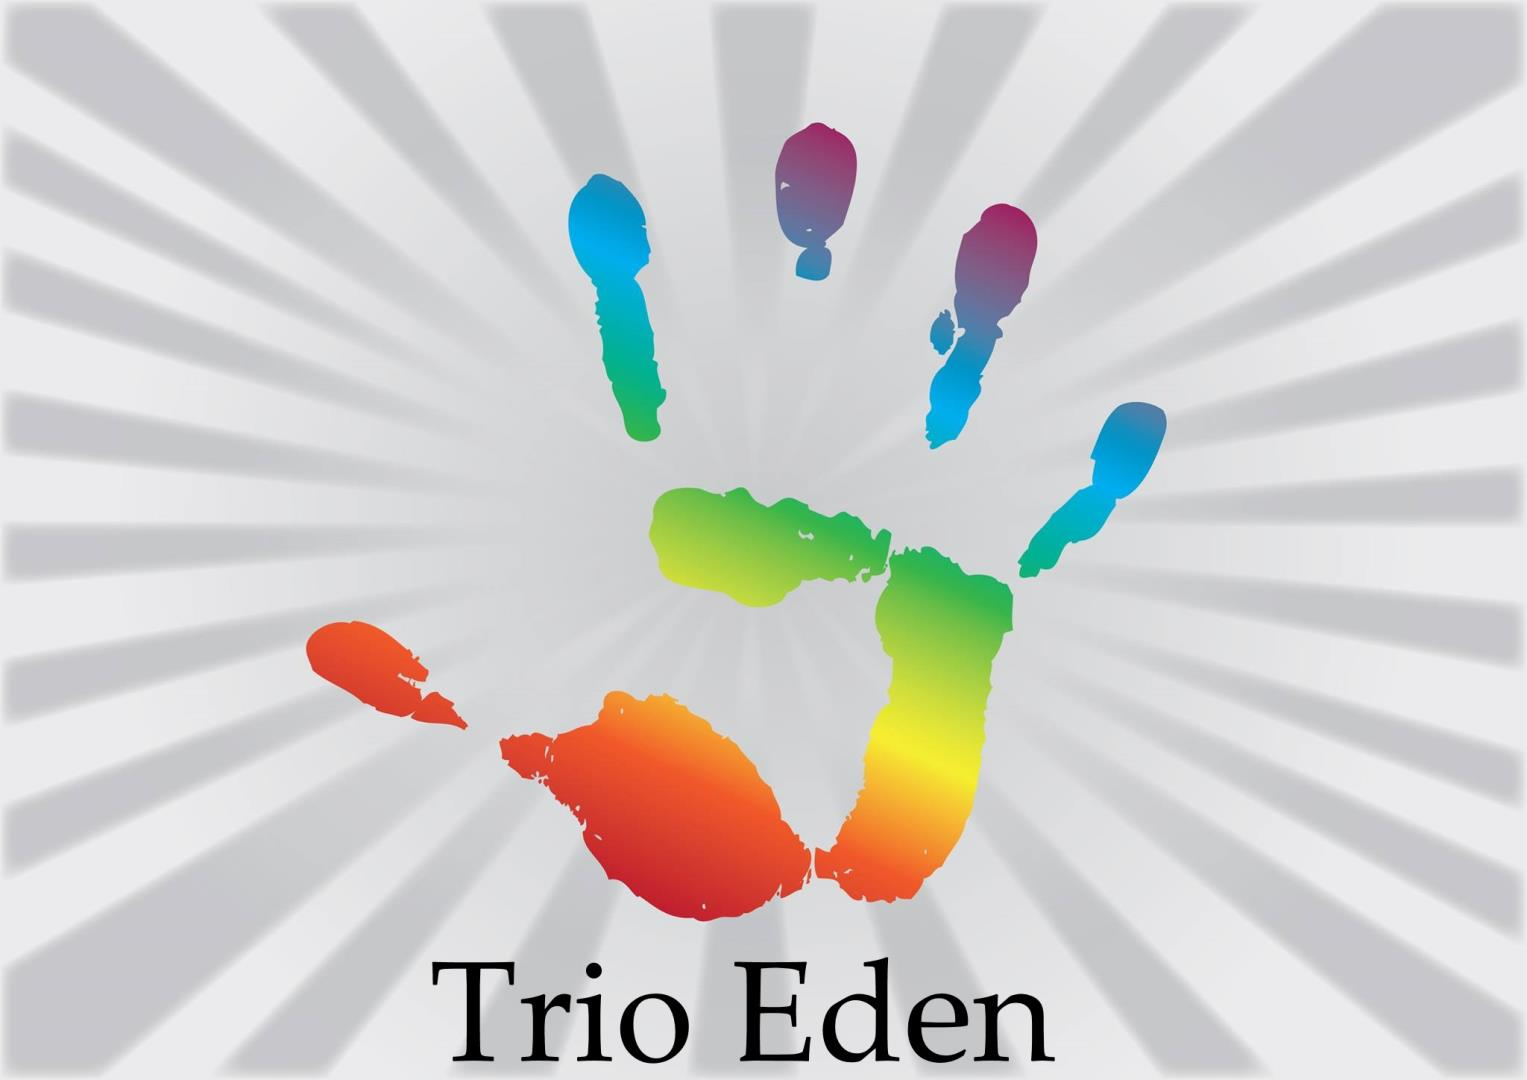 Association - Trio eden